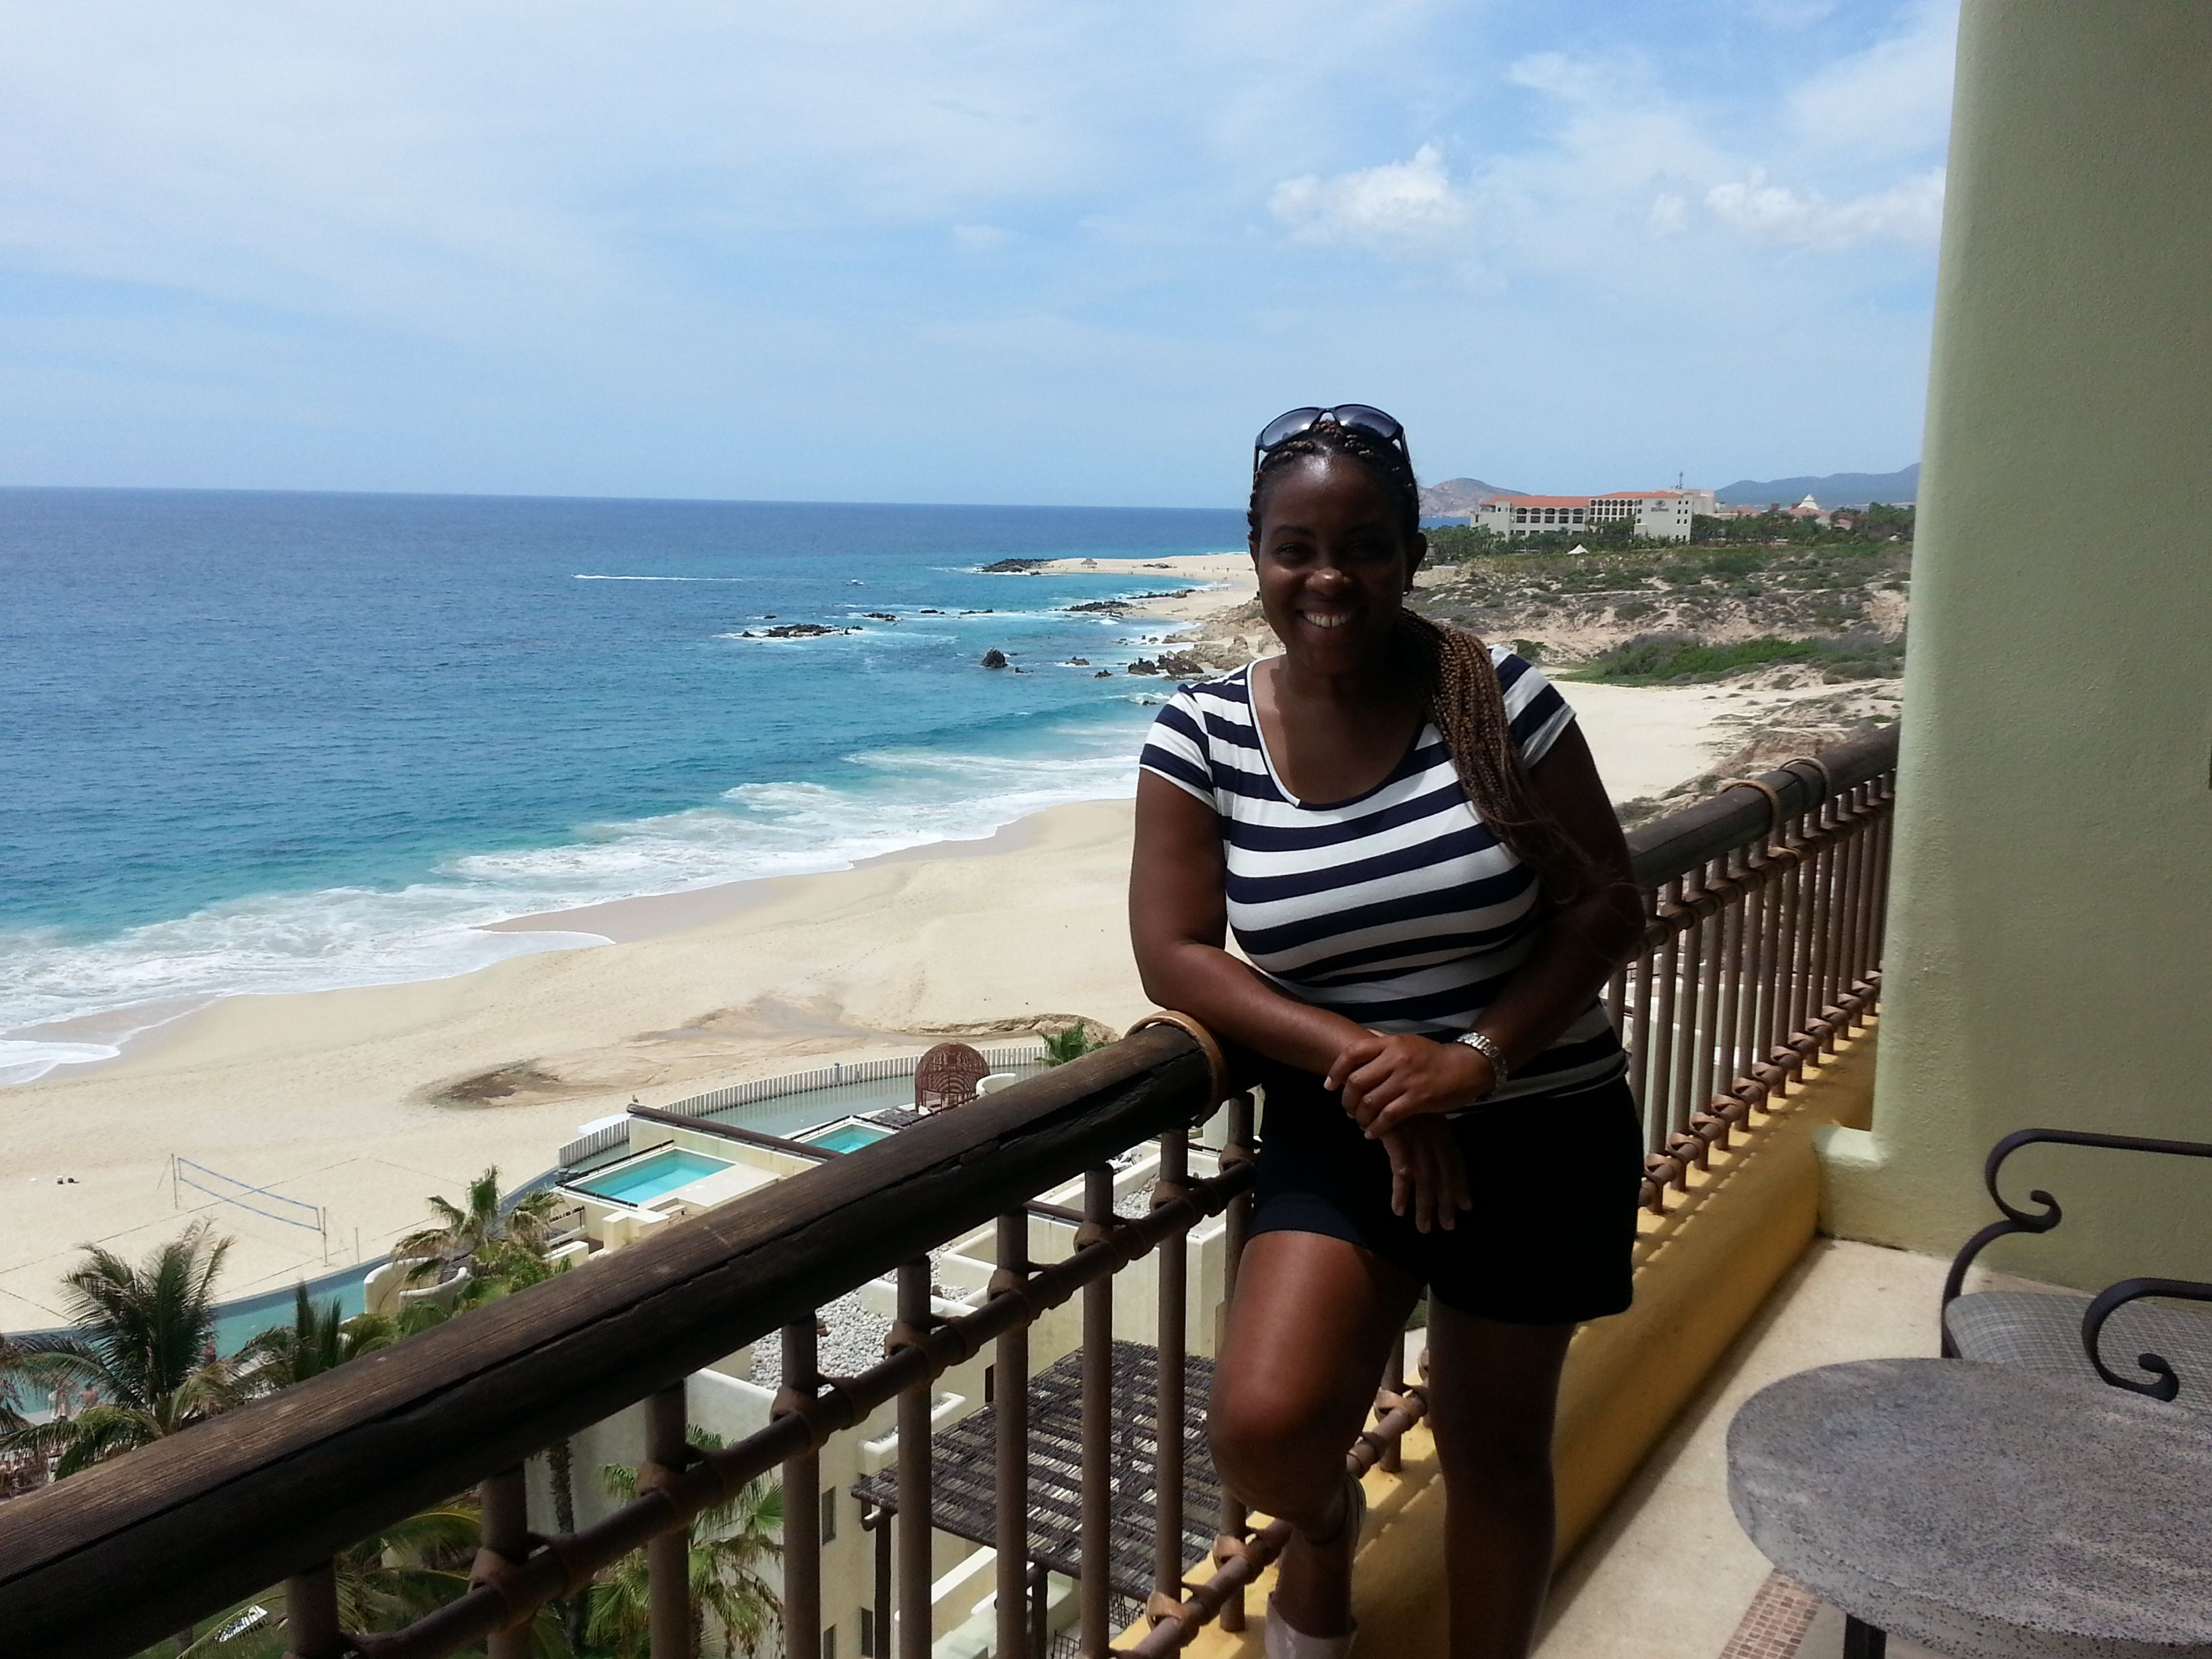 Enjoying the view from the balcony of an oceanfront suite at Secrets Marquis Los Cabos